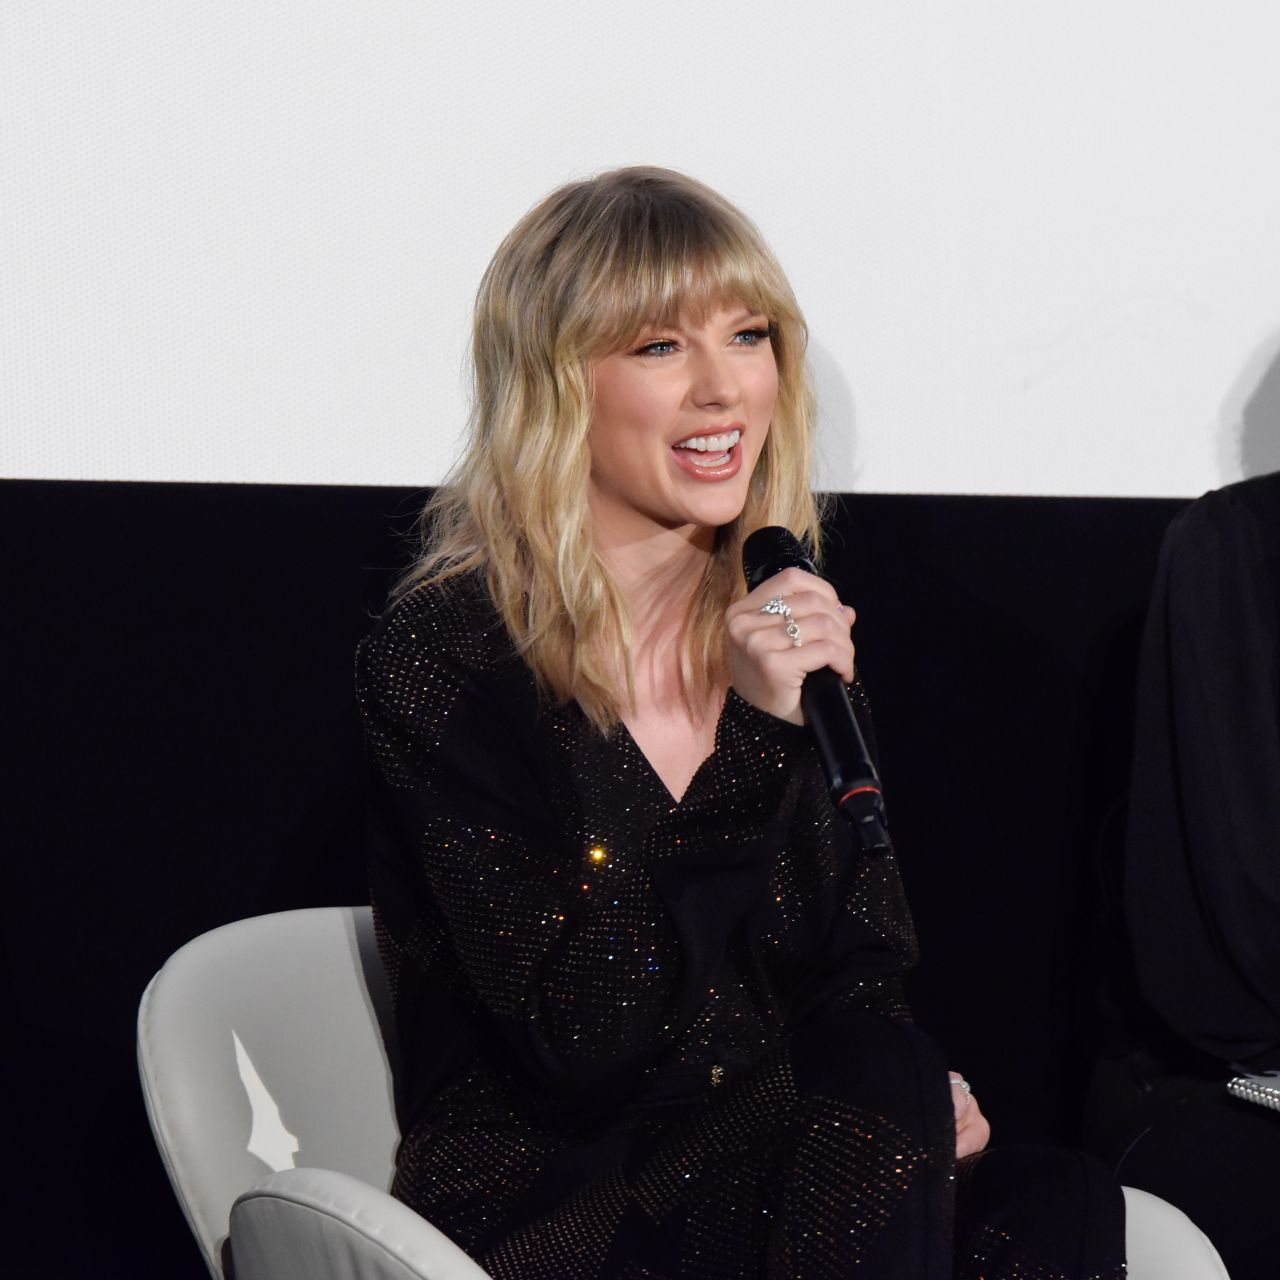 Taylor Swift gorgeous at fan event in Tokyo